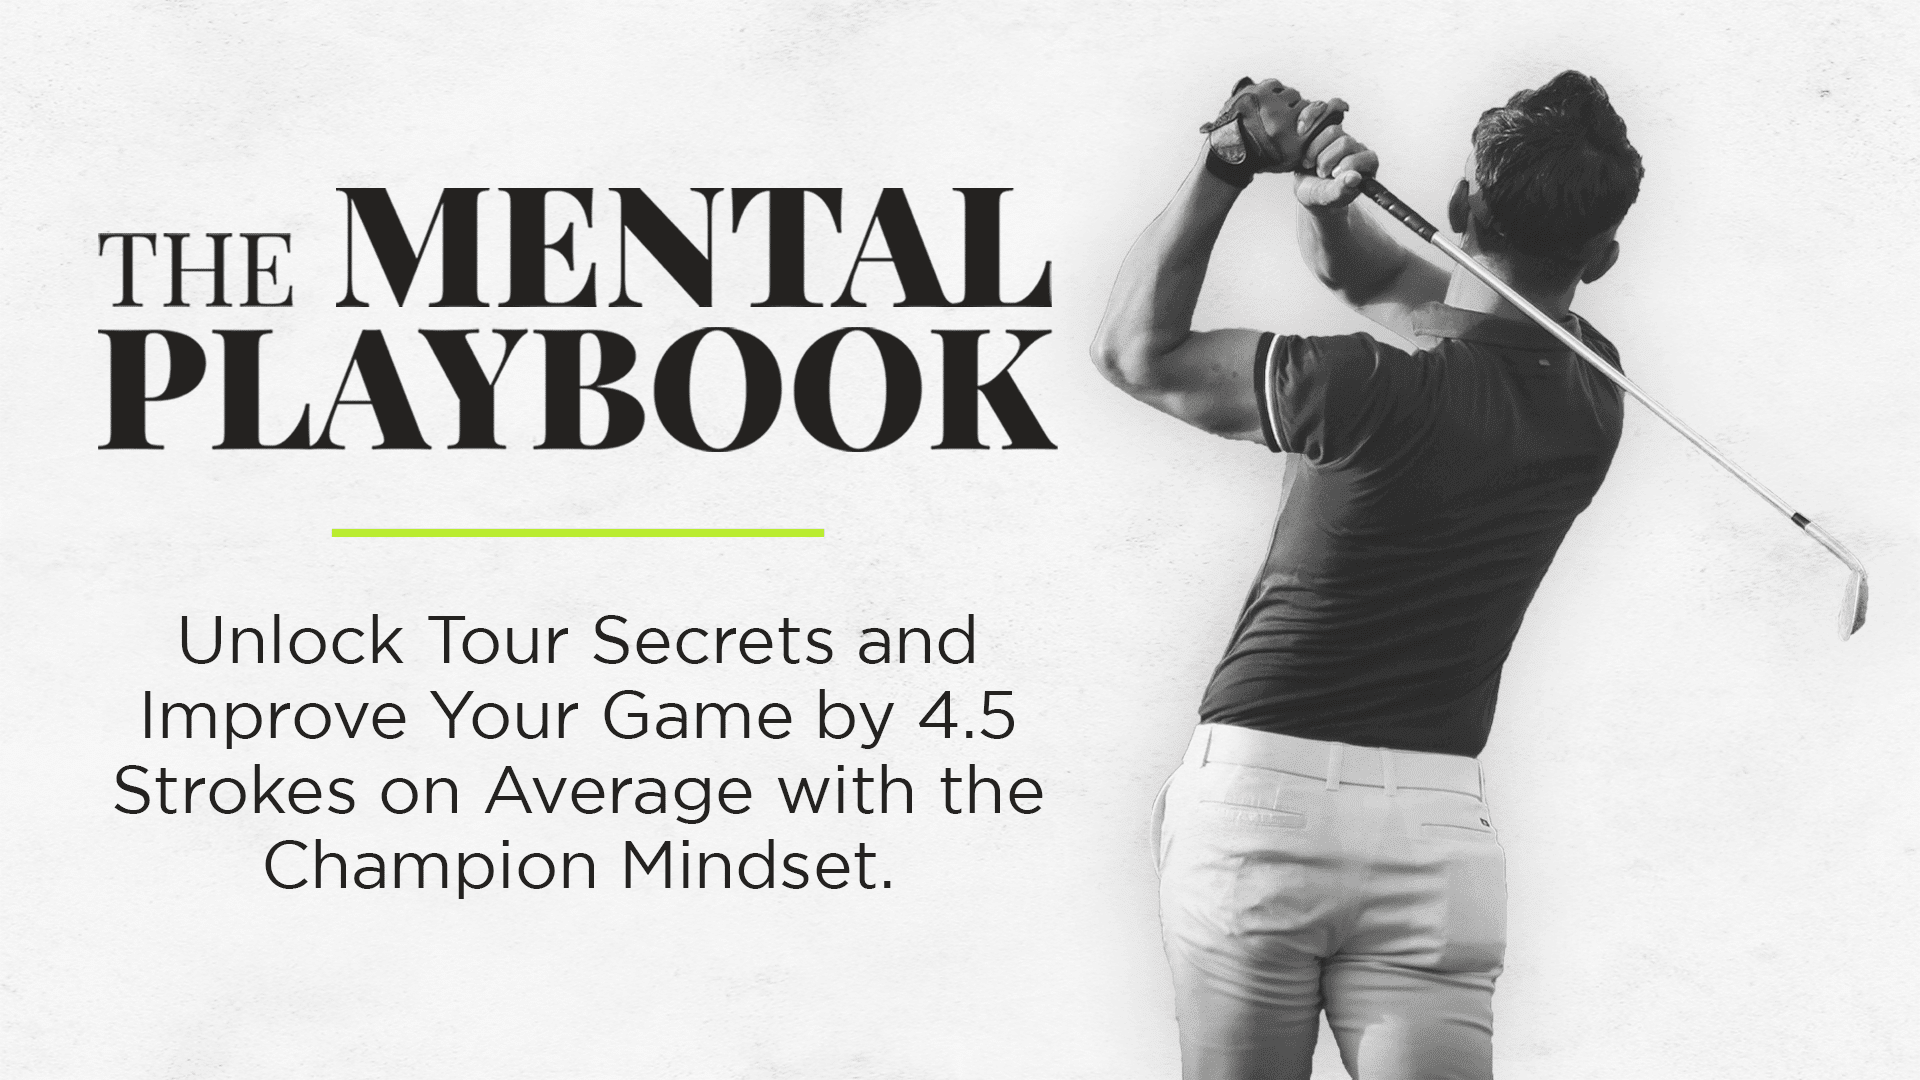 The Mental Playbook